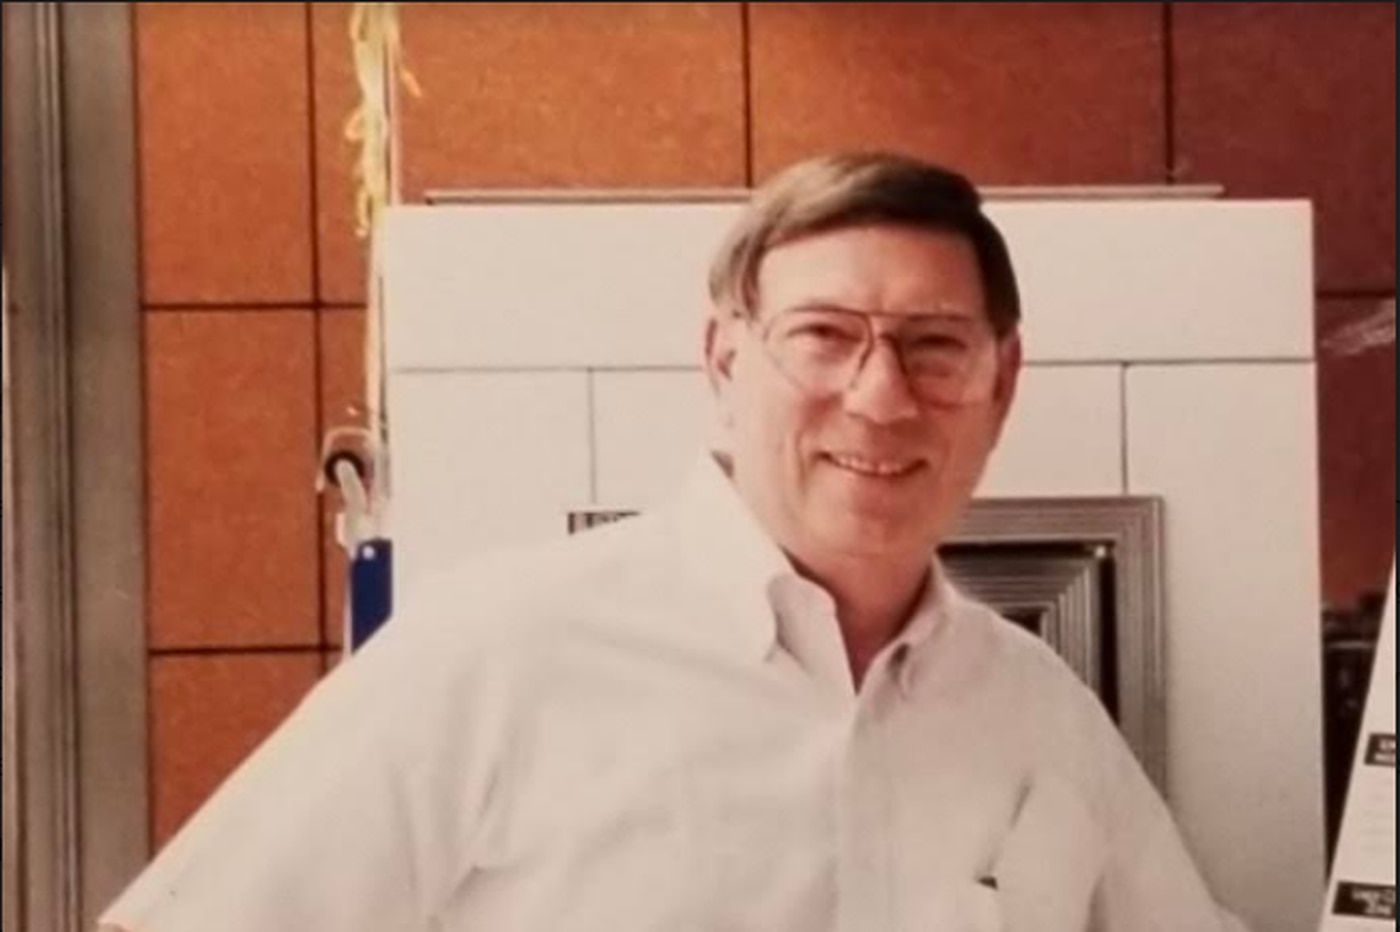 Stanley B. Caplen, 84, former owner-operator of food service supply company